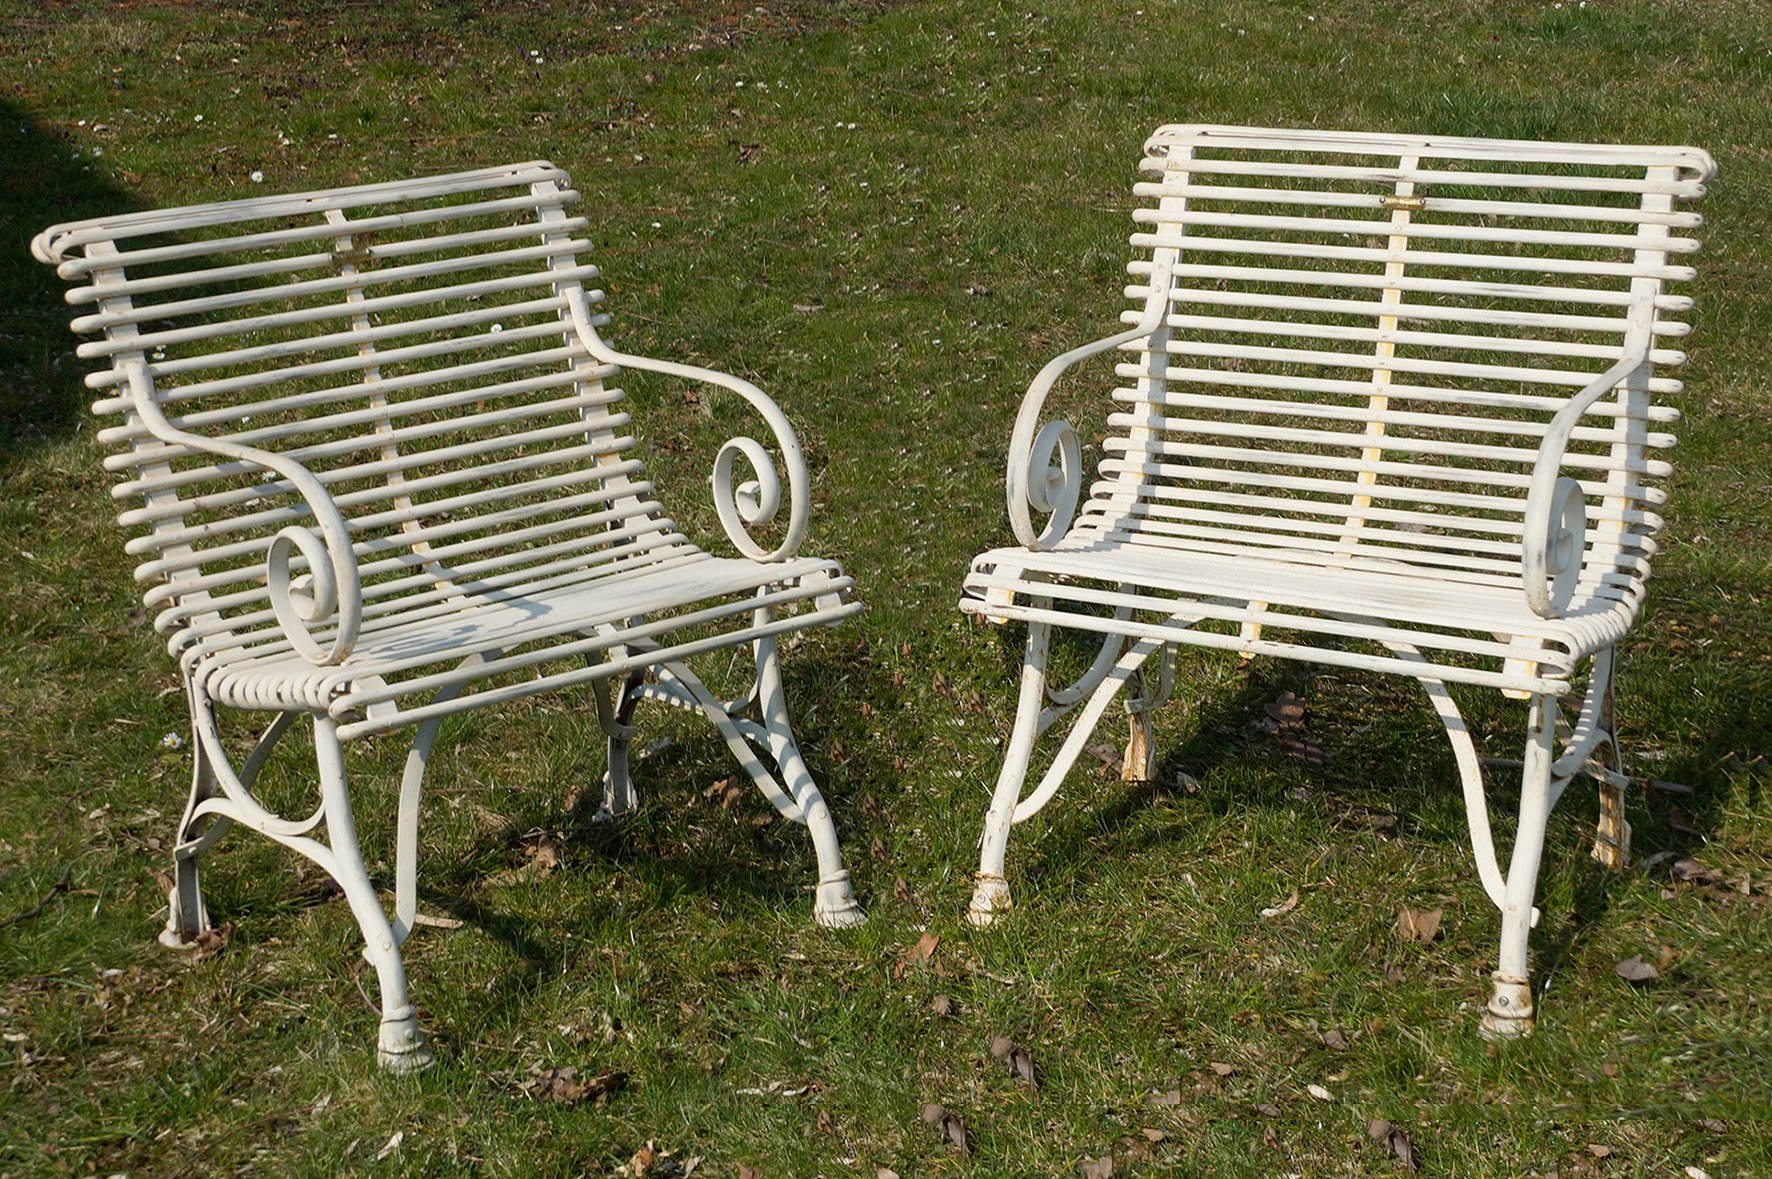 french wrought iron garden chairs with armrests 1990s set of 2 - Garden Chairs